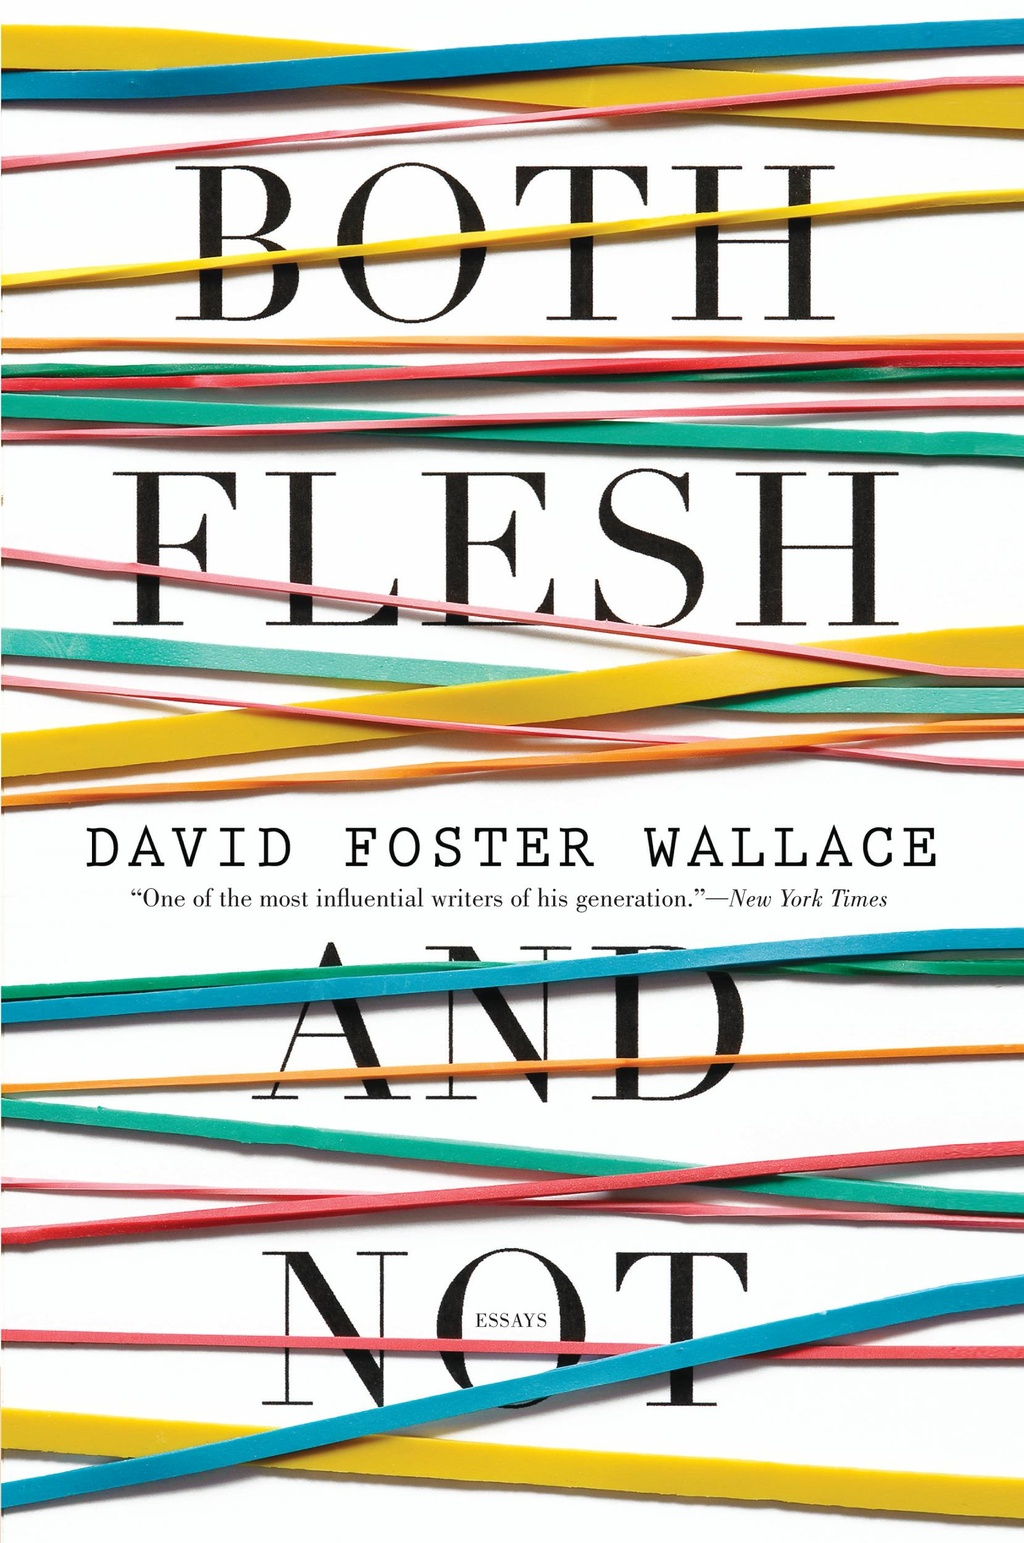 024 Essay Example David Foster Wallace Essays Formidable Amazon And The Long Thing New On Novels Cruise Ship Full